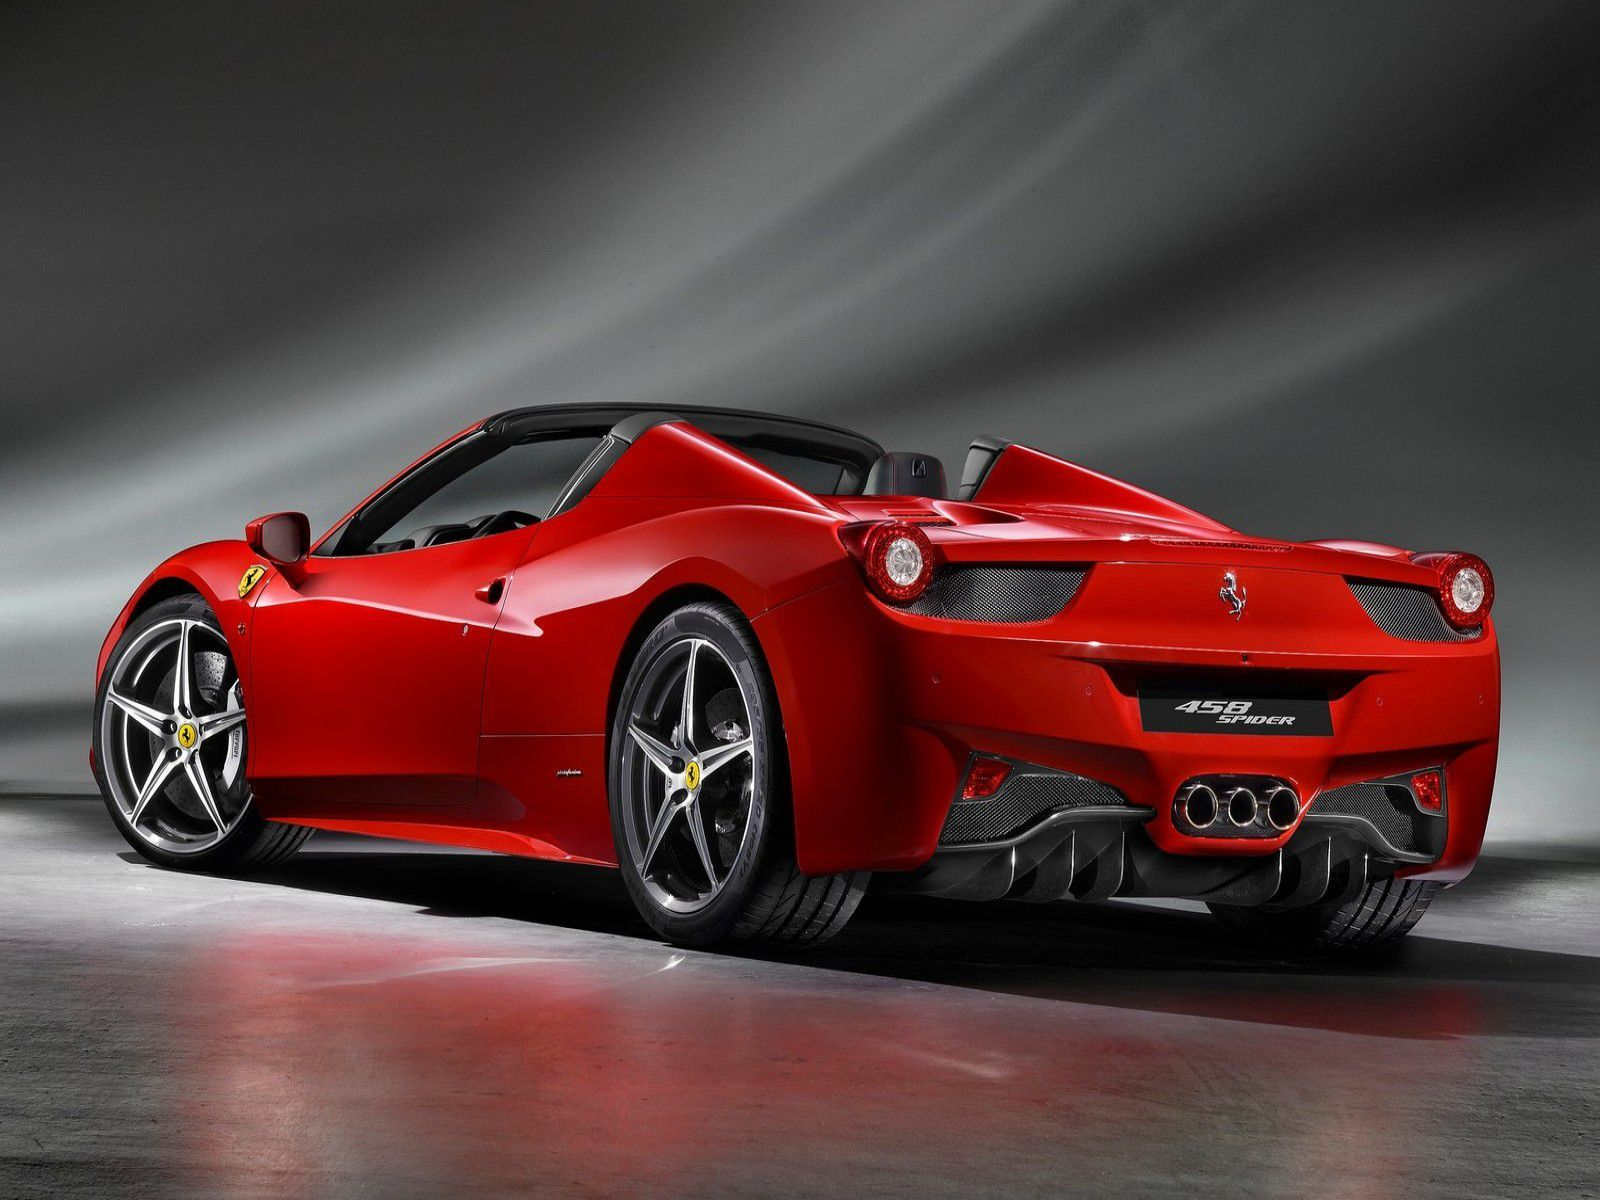 All Models Of Ferrari With Pictures Wallfree 100 Free High Definition Wallpaper High Definition Background 4k Wallpaper 4k D Ferrari 458 Ferrari Mobil Ferrari speciale wallpaper hd